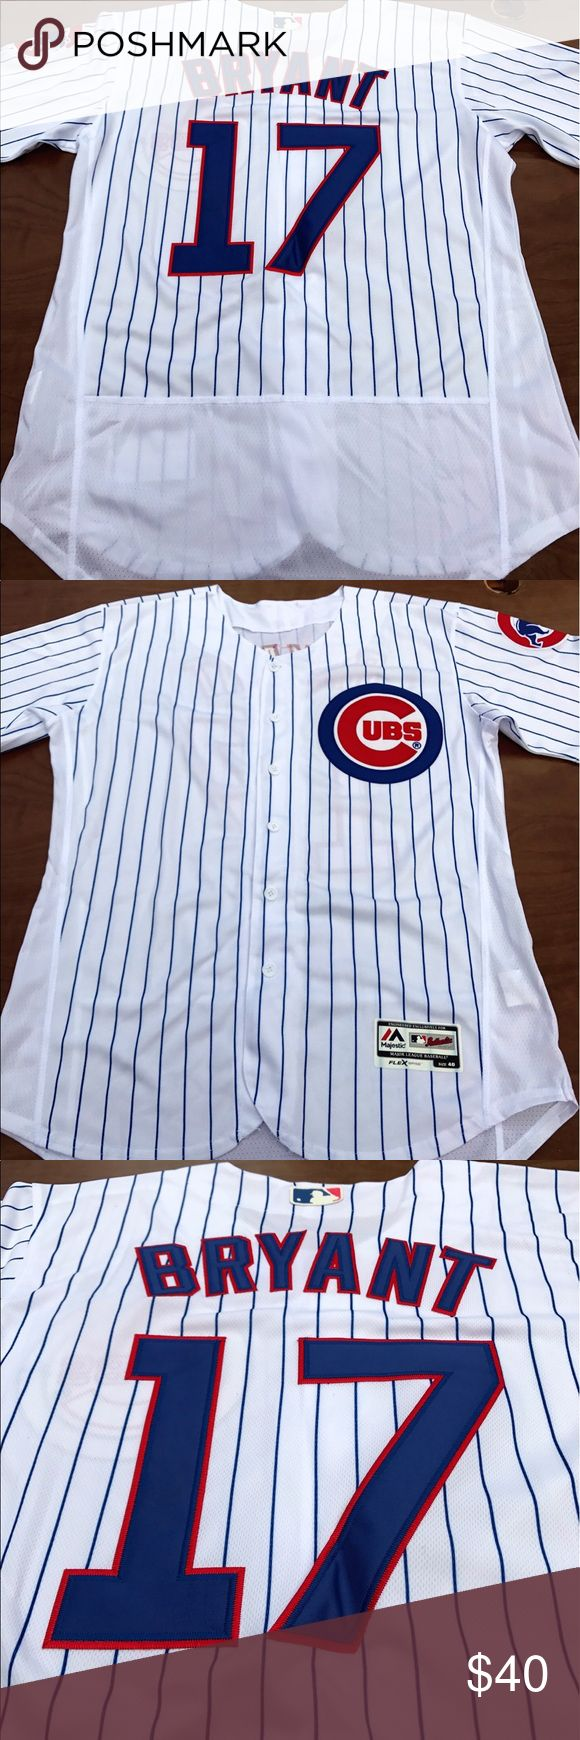 Men's Chicago Cubs Kris Bryant Home jersey (M) Chicago Cubs Men's Kris Bryant home jersey. Brand new with tags, Majestic Athletic, fully embroidered Flex Base on field jersey. Please check my other listings for more Cubs merchandise! Rizzo. Bryant. Russell. Ross. Schwarber. I've got em all! Majestic Shirts Casual Button Down Shirts